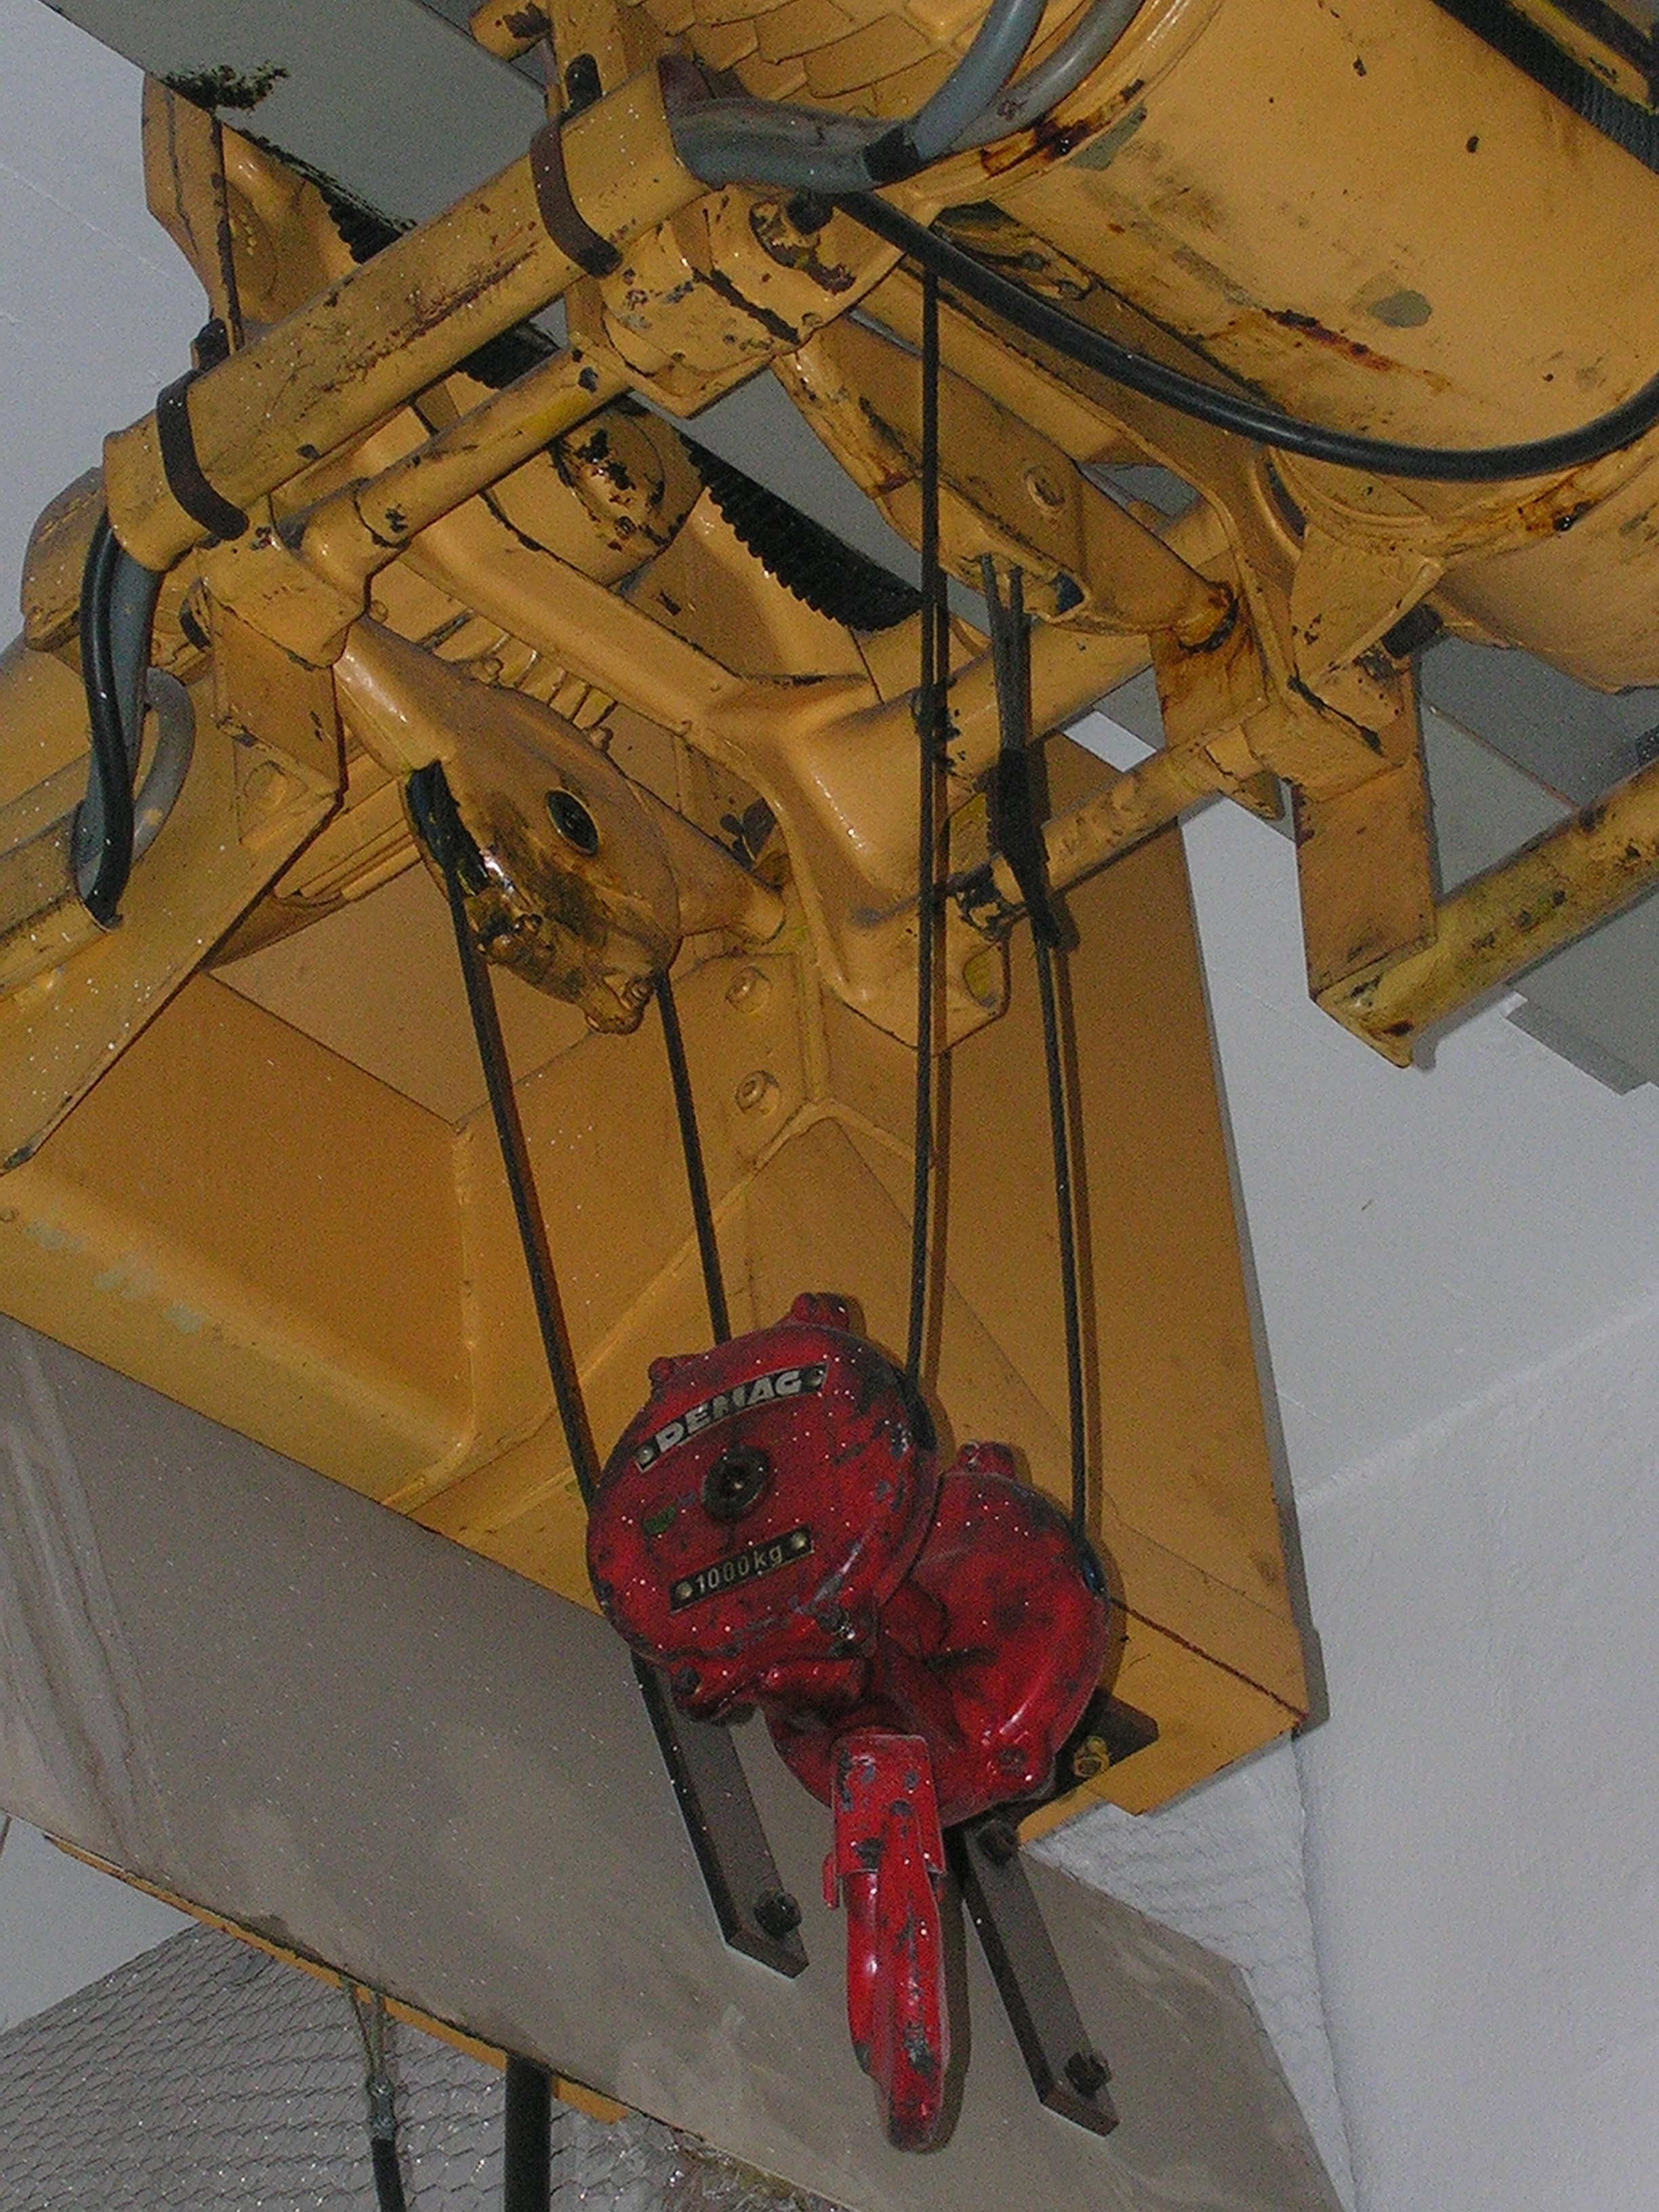 A hoist using the compound pulley system yielding an advantage of 4. The single fixed pulley is installed on the hoist (device). The two movable pulleys (joined together) are attached to the hook. One end of the rope is attached to the crane frame, another to the winch.